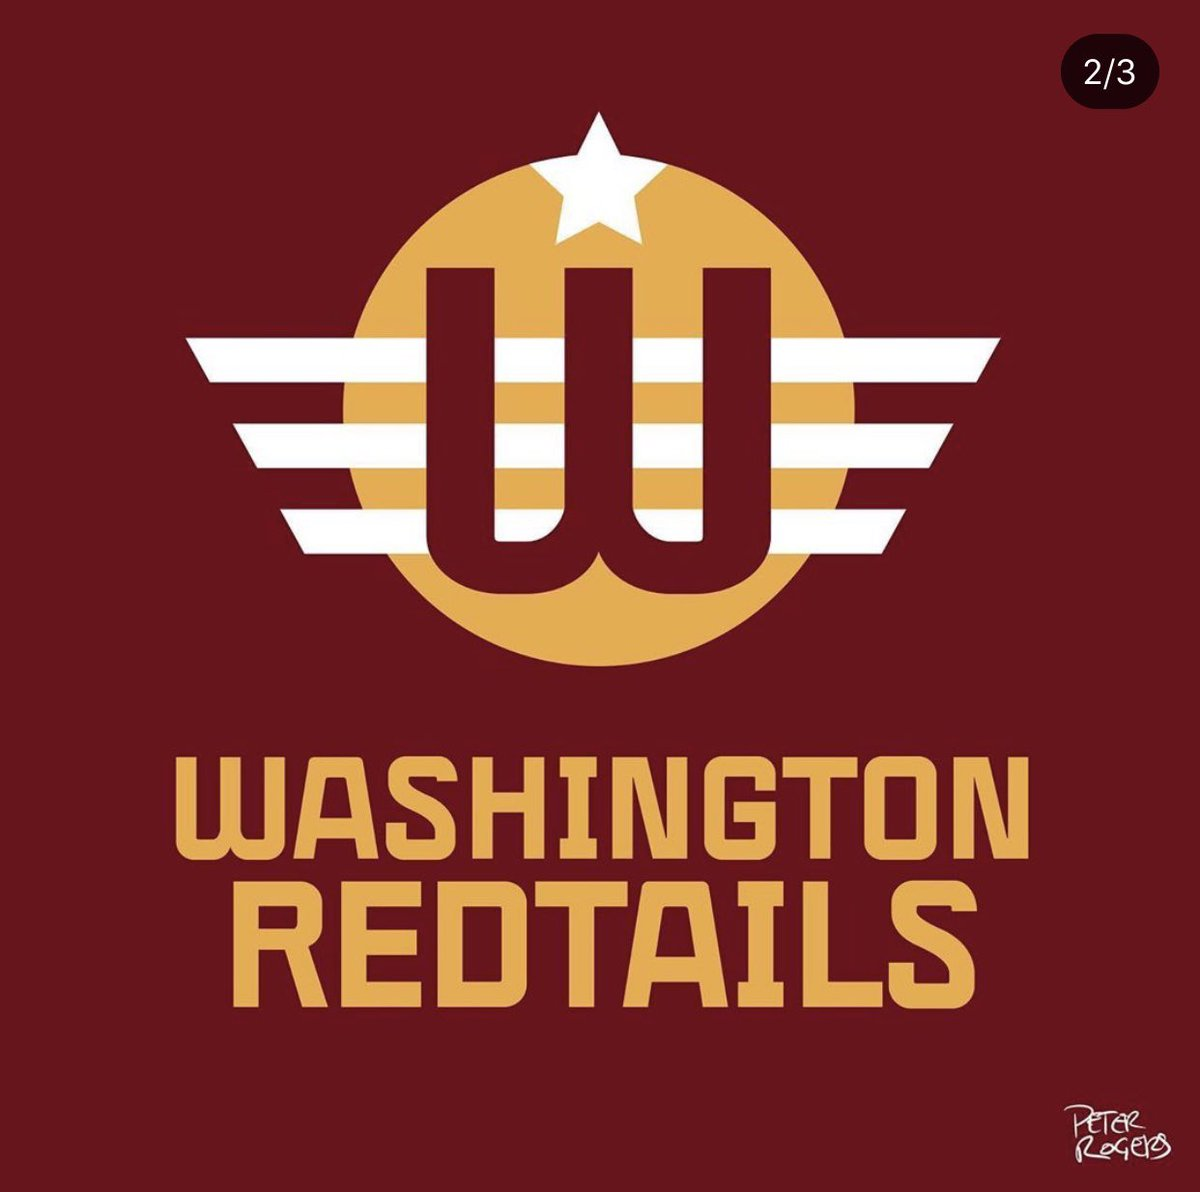 Washington Redtails is my vote.  Either the version with the P-51 logo, or something like this one. https://t.co/lilqVtbbQt